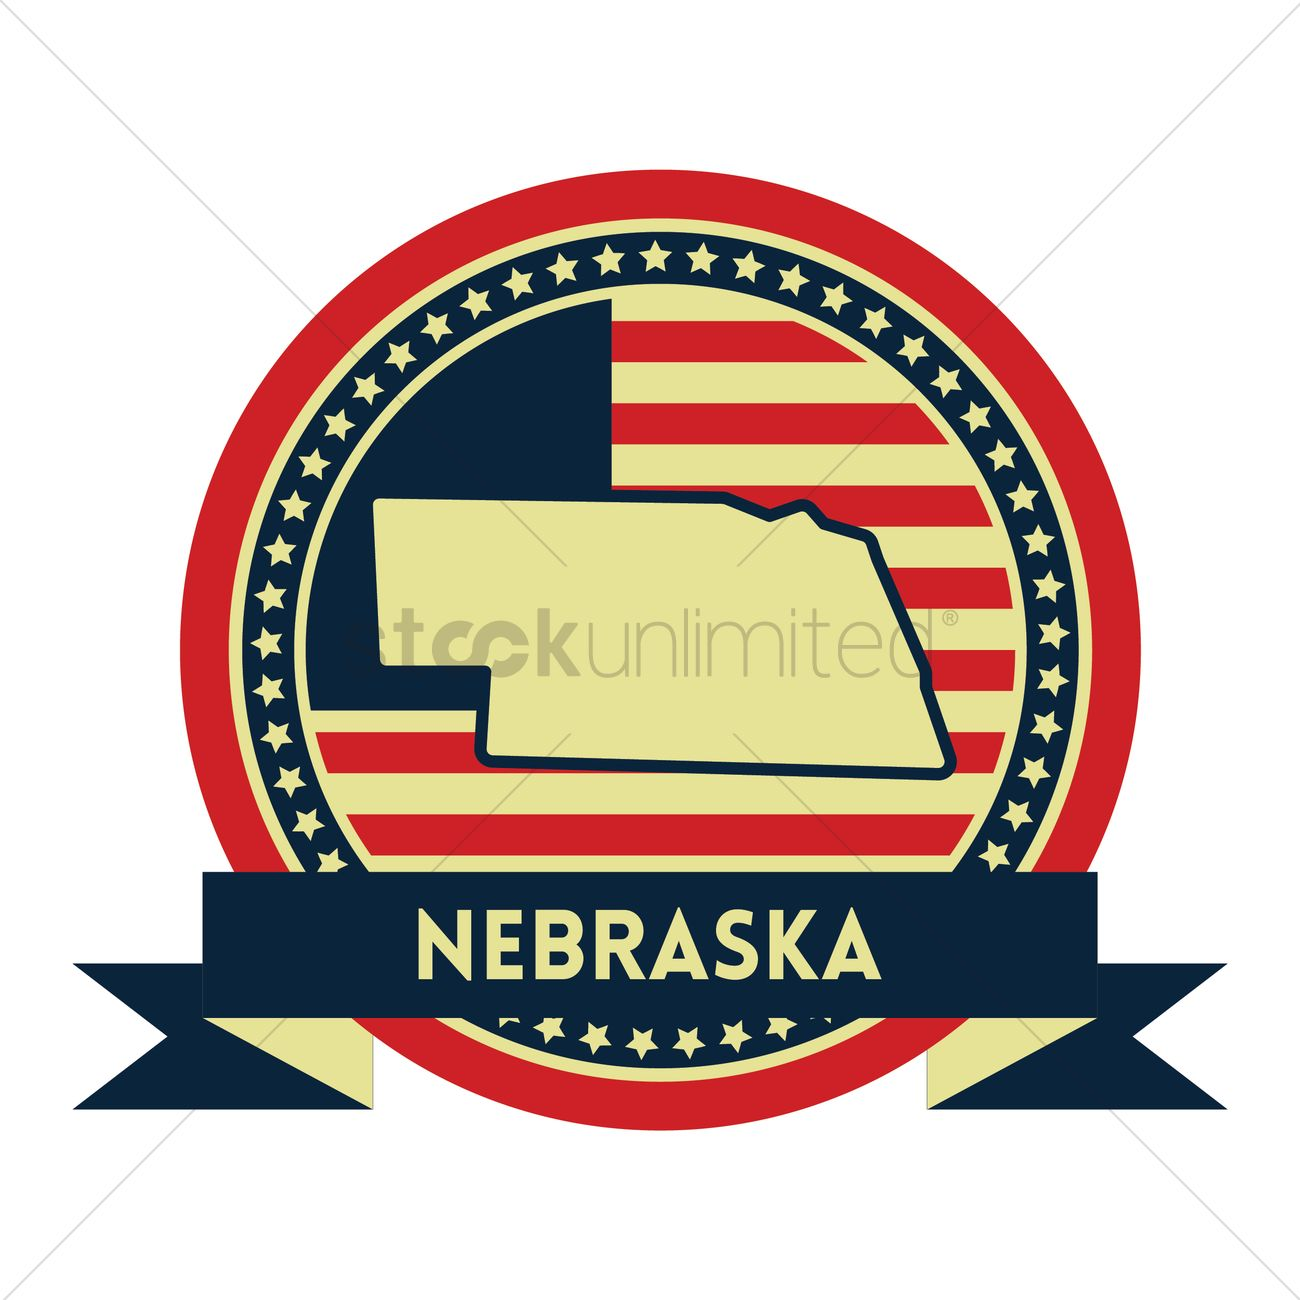 Free Nebraska Map.Free Nebraska Map Label Vector Image 1618441 Stockunlimited